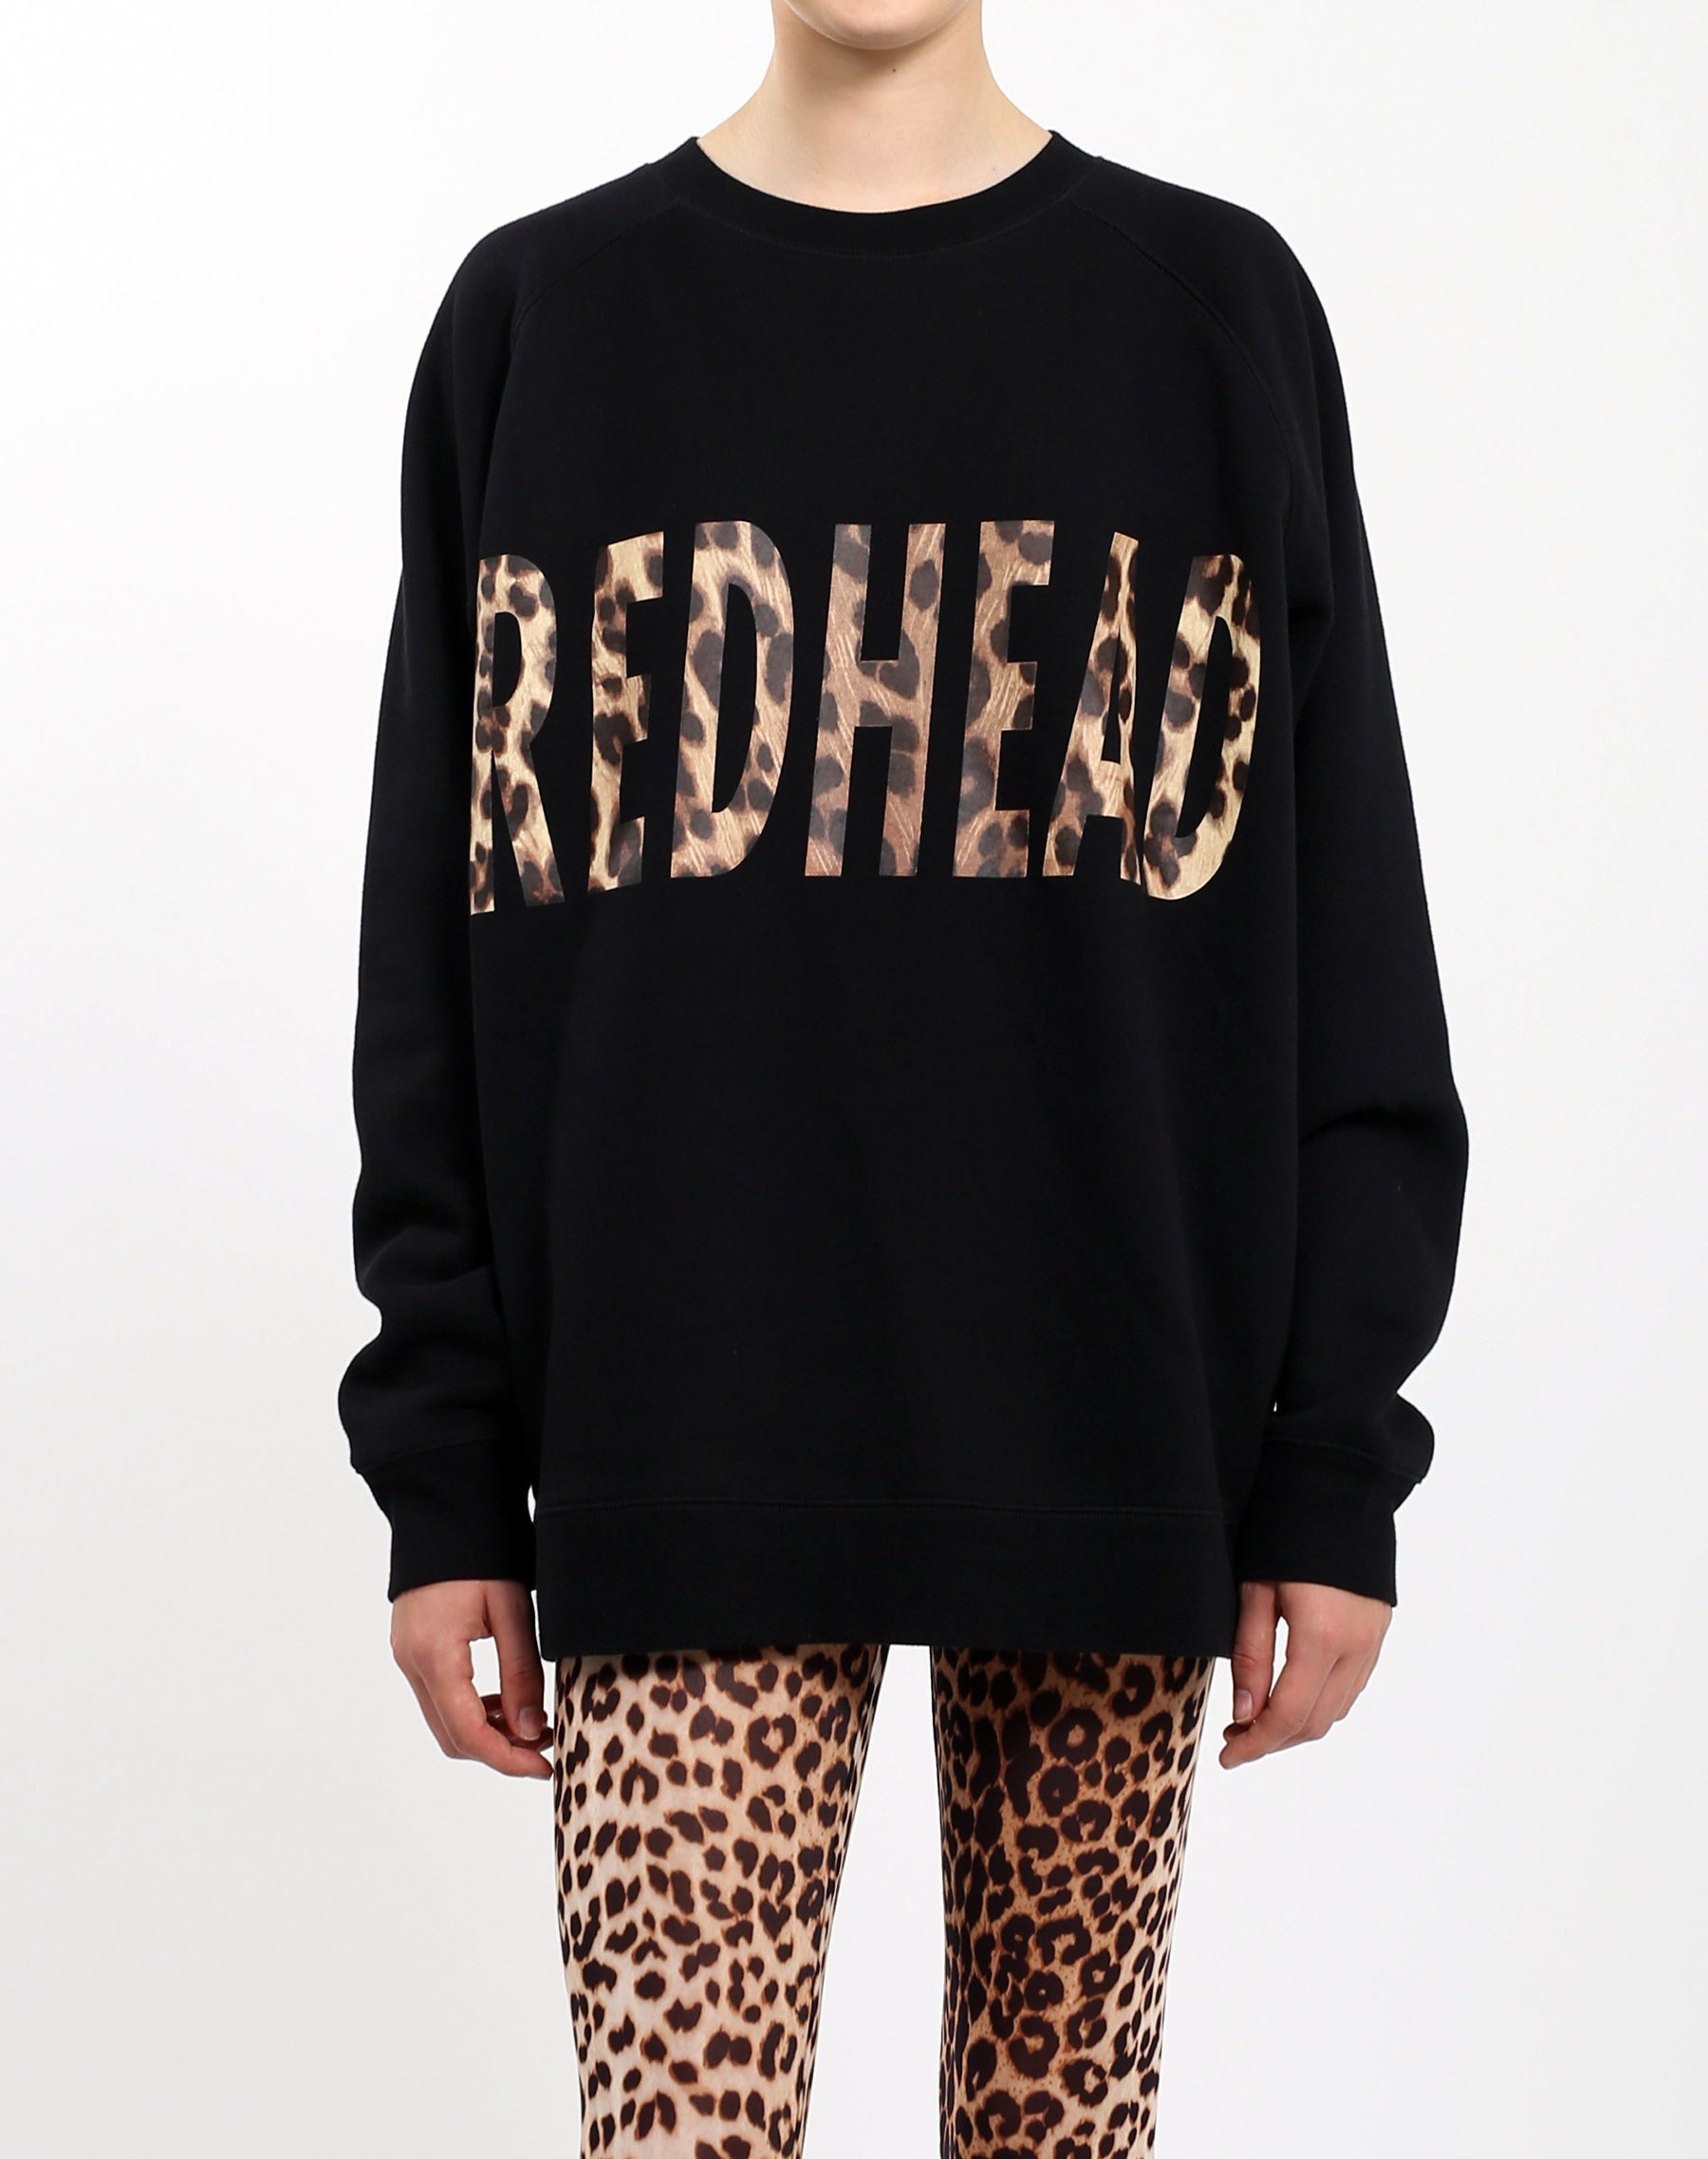 Photo of the Redhead big sister crew neck sweatshirt in leopard by Brunette the Label.